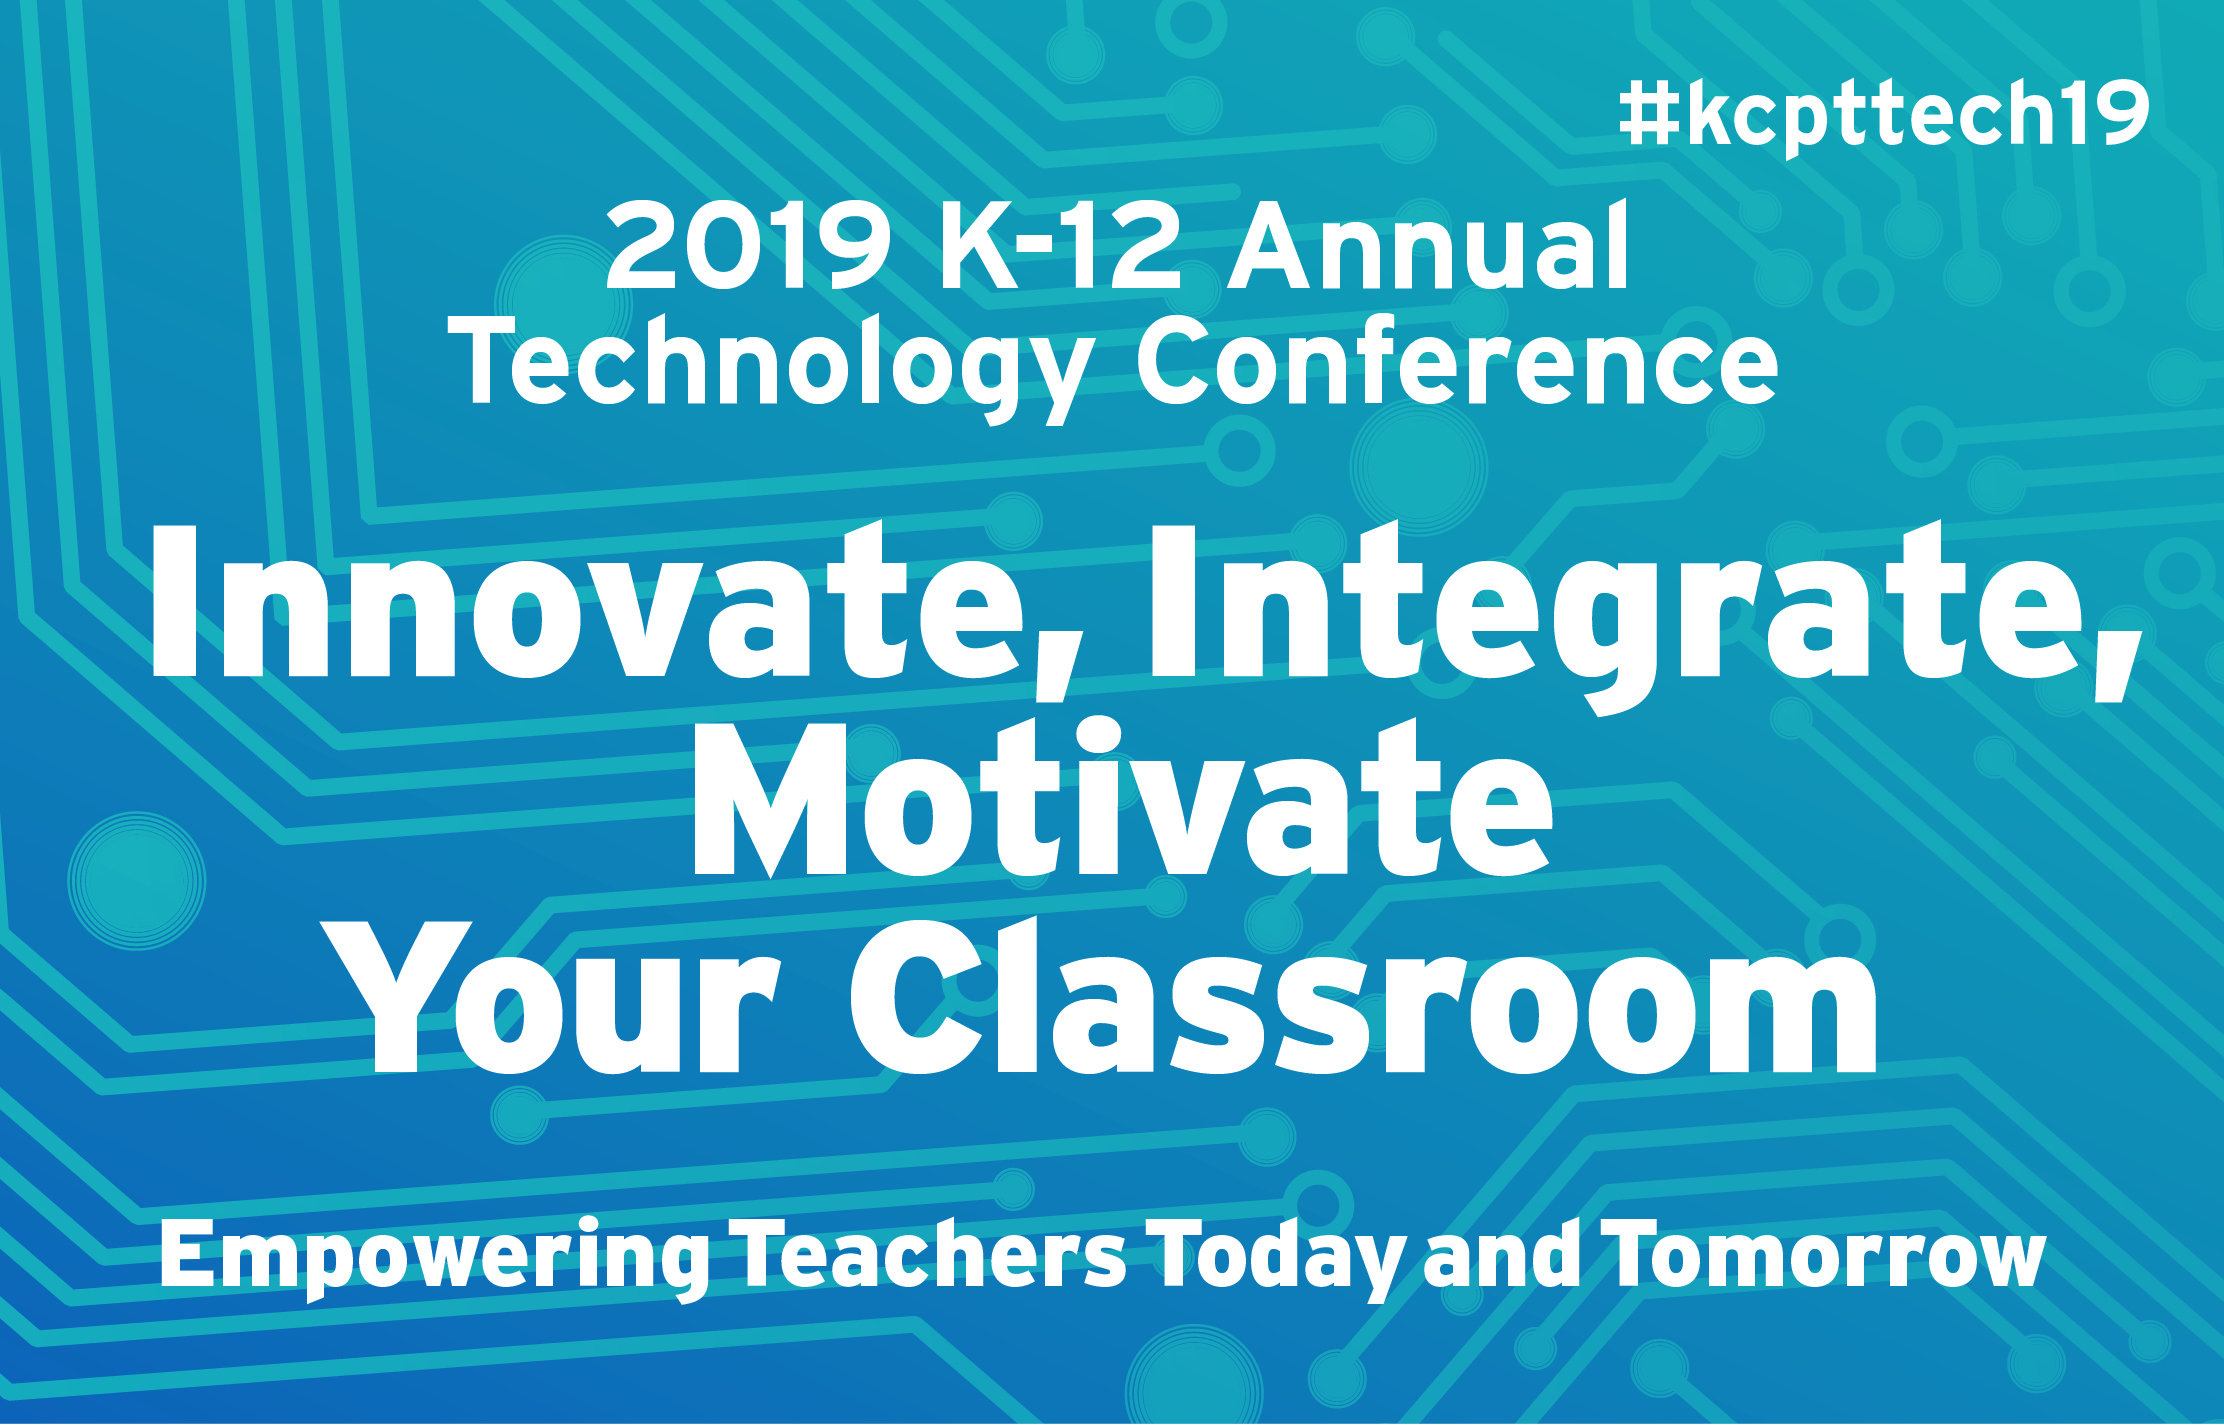 KCPT's Annual K-12 Technology Conference